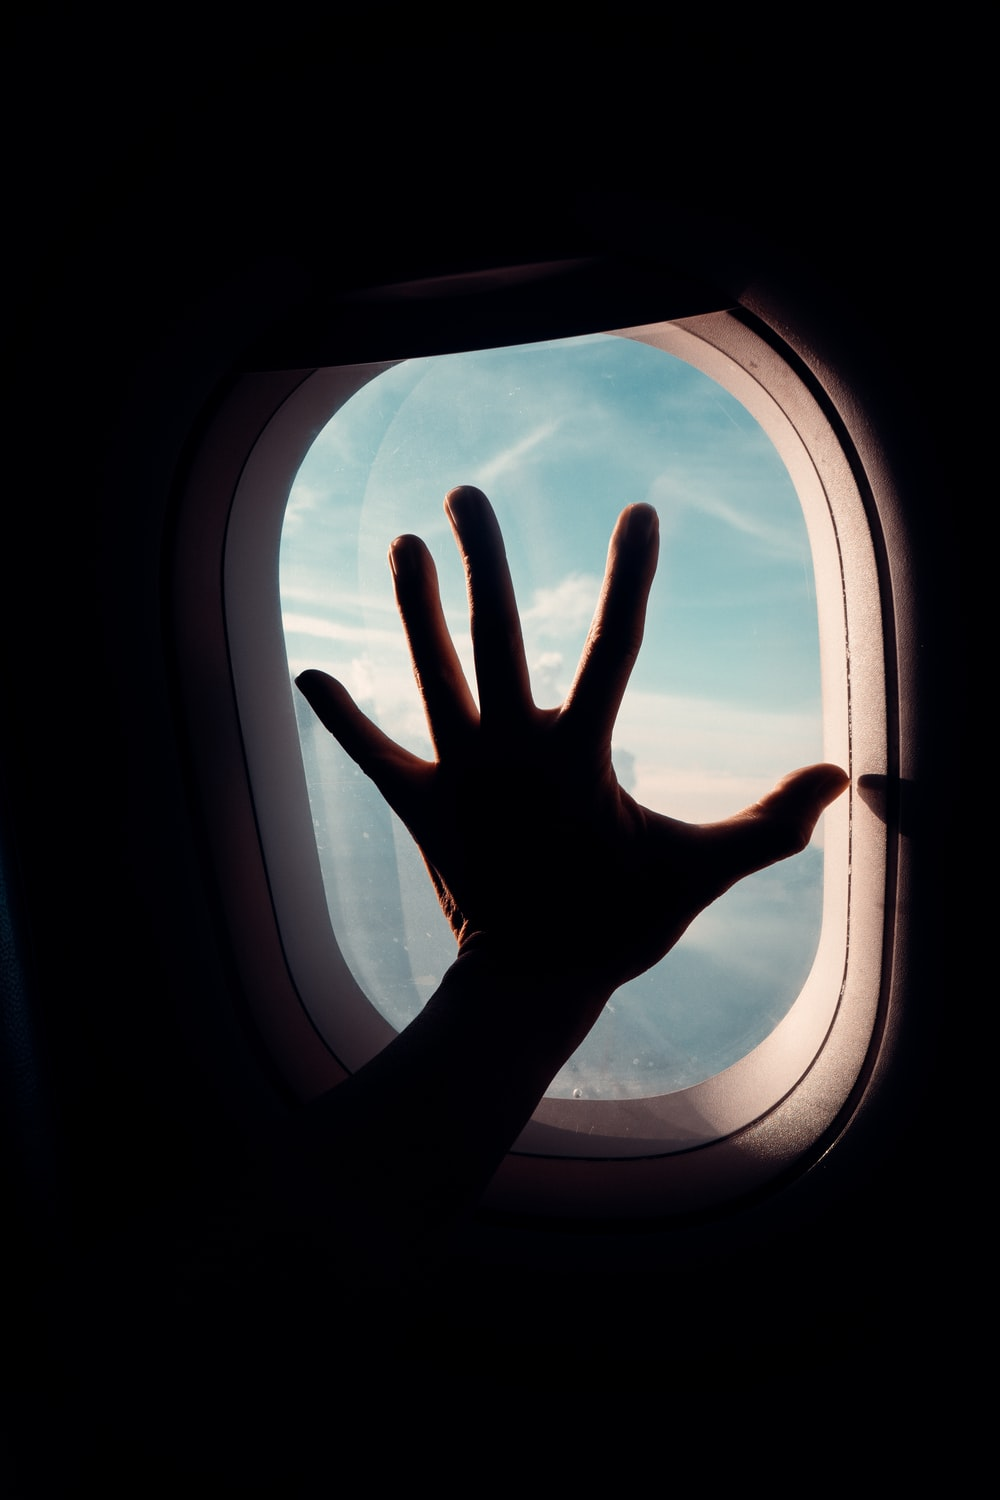 persons hand on airplane window